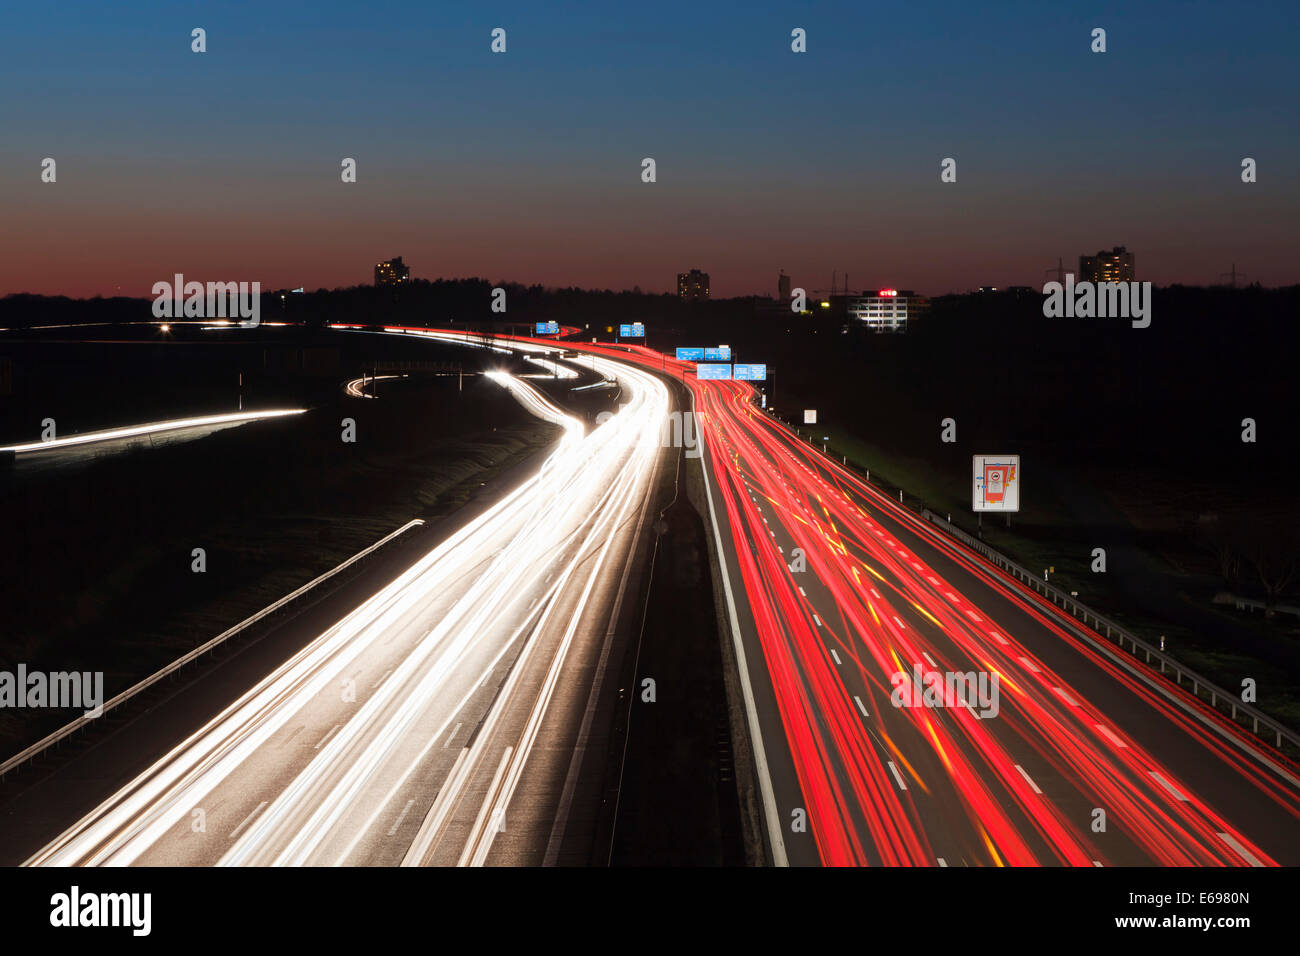 Rush hour on the A8 motorway, Baden-Württemberg, Germany - Stock Image